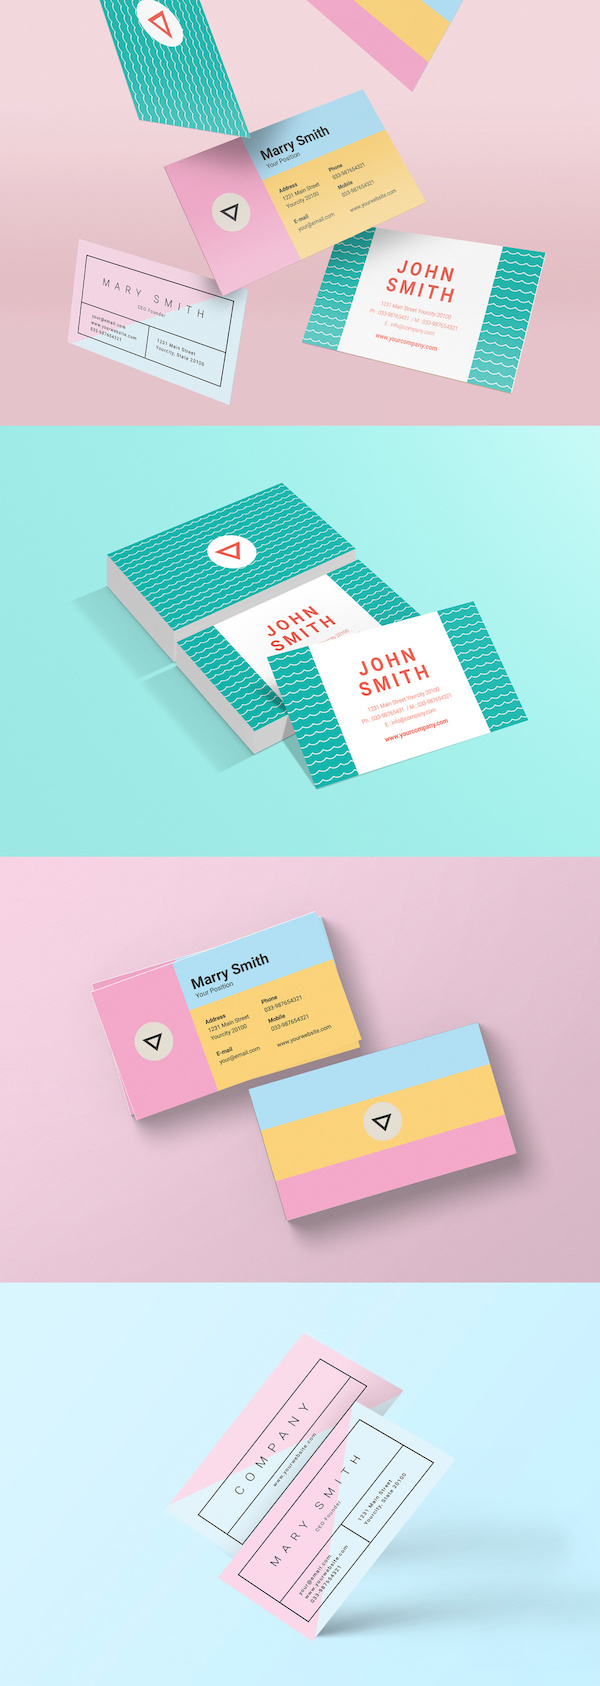 10 Eye-Catching Business Card Designs That Will Leave A Lasting Impression